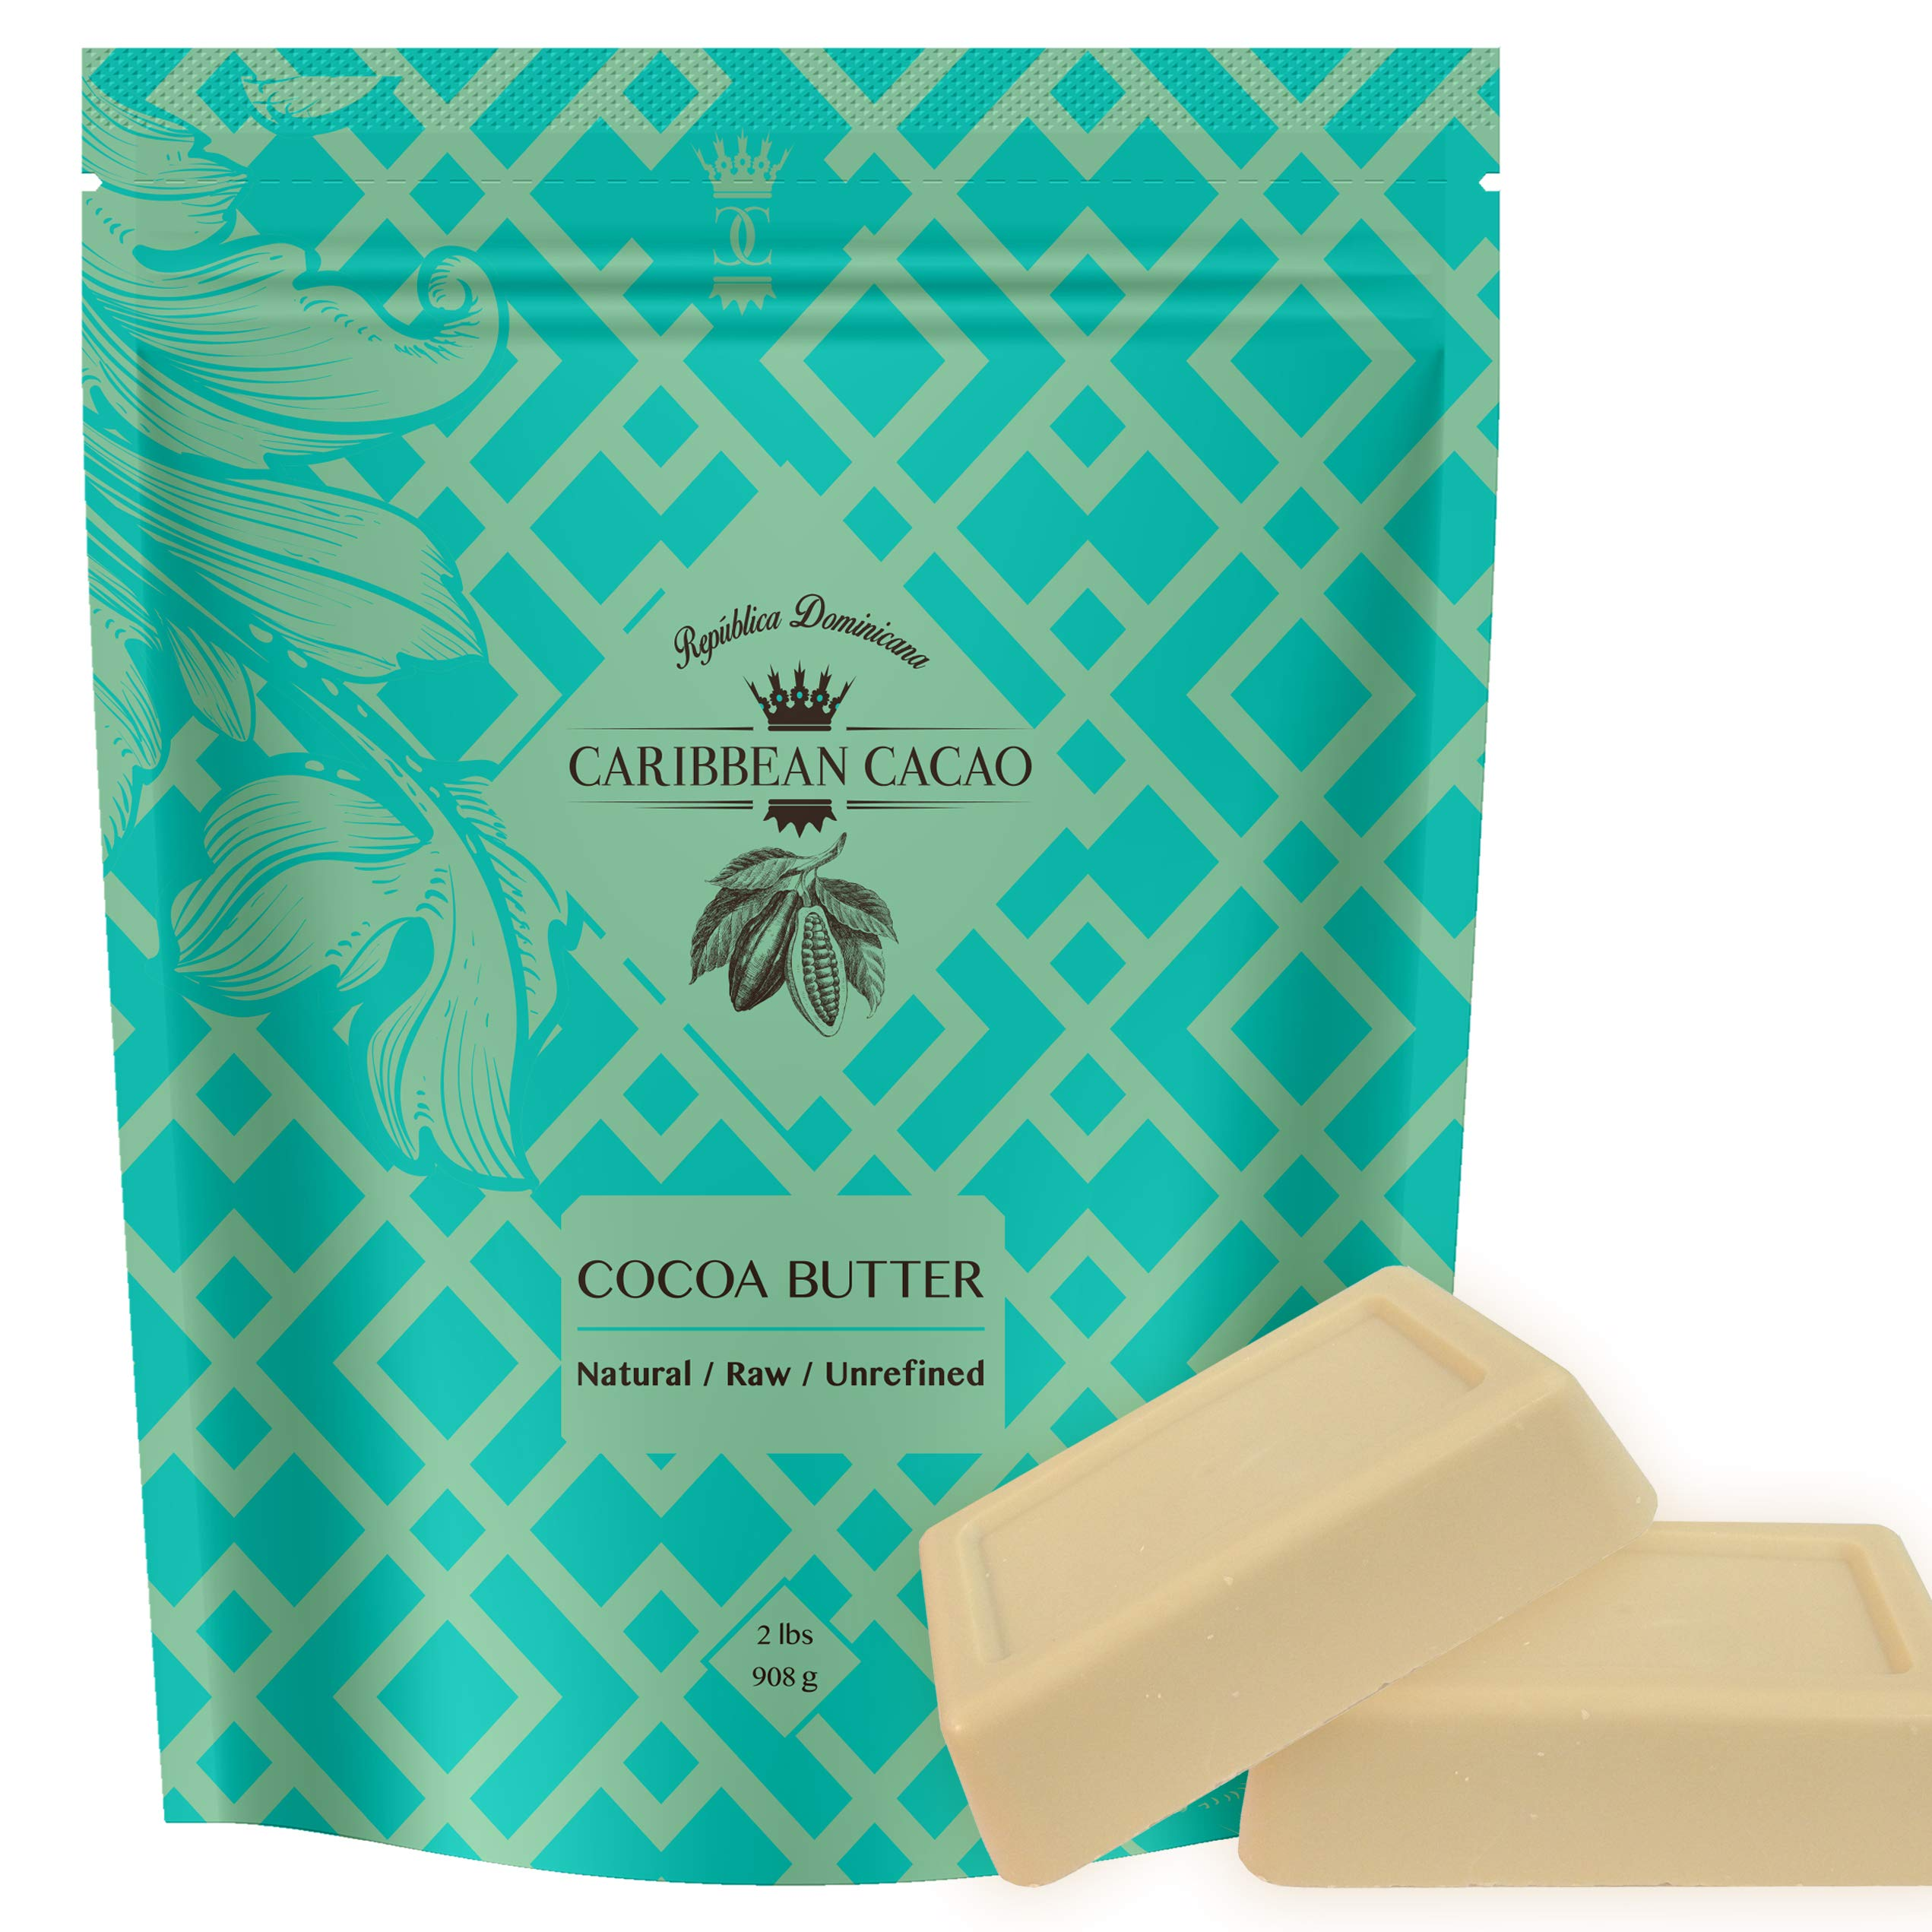 Caribbean Cacao Ultimate Cocoa Butter - Delightfully Rich Scent & Highest Quality, From our exclusive source in the Dominican Republic. 2 LB Body Butter Bar For Stretch Marks, Dry Skin, Acne etc